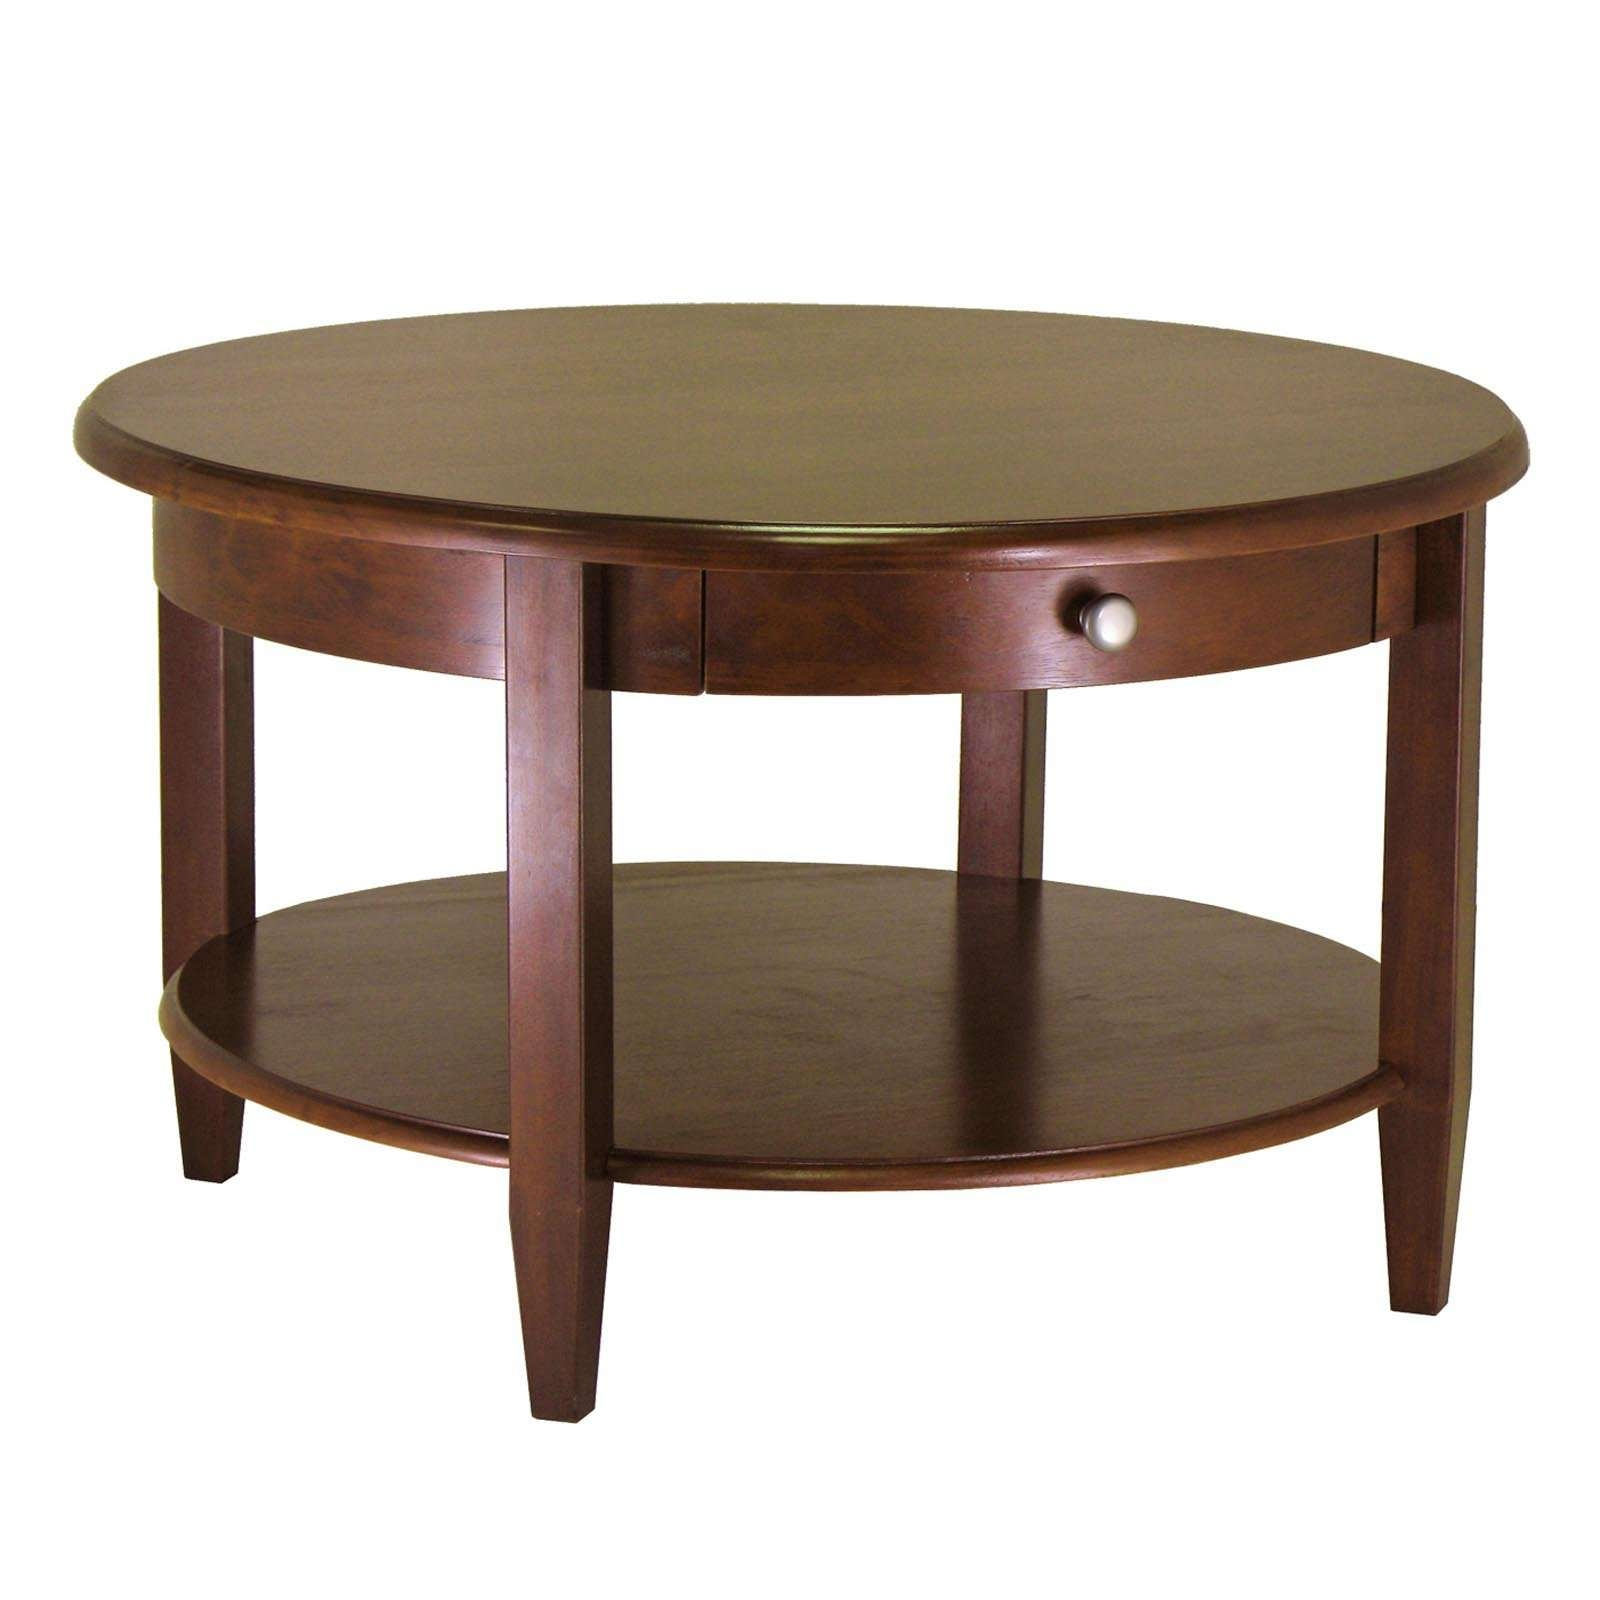 Most Current Round Coffee Tables With Drawers Intended For Coffee Table : Marvelous Metal Coffee Table Outdoor Coffee Table (View 16 of 20)